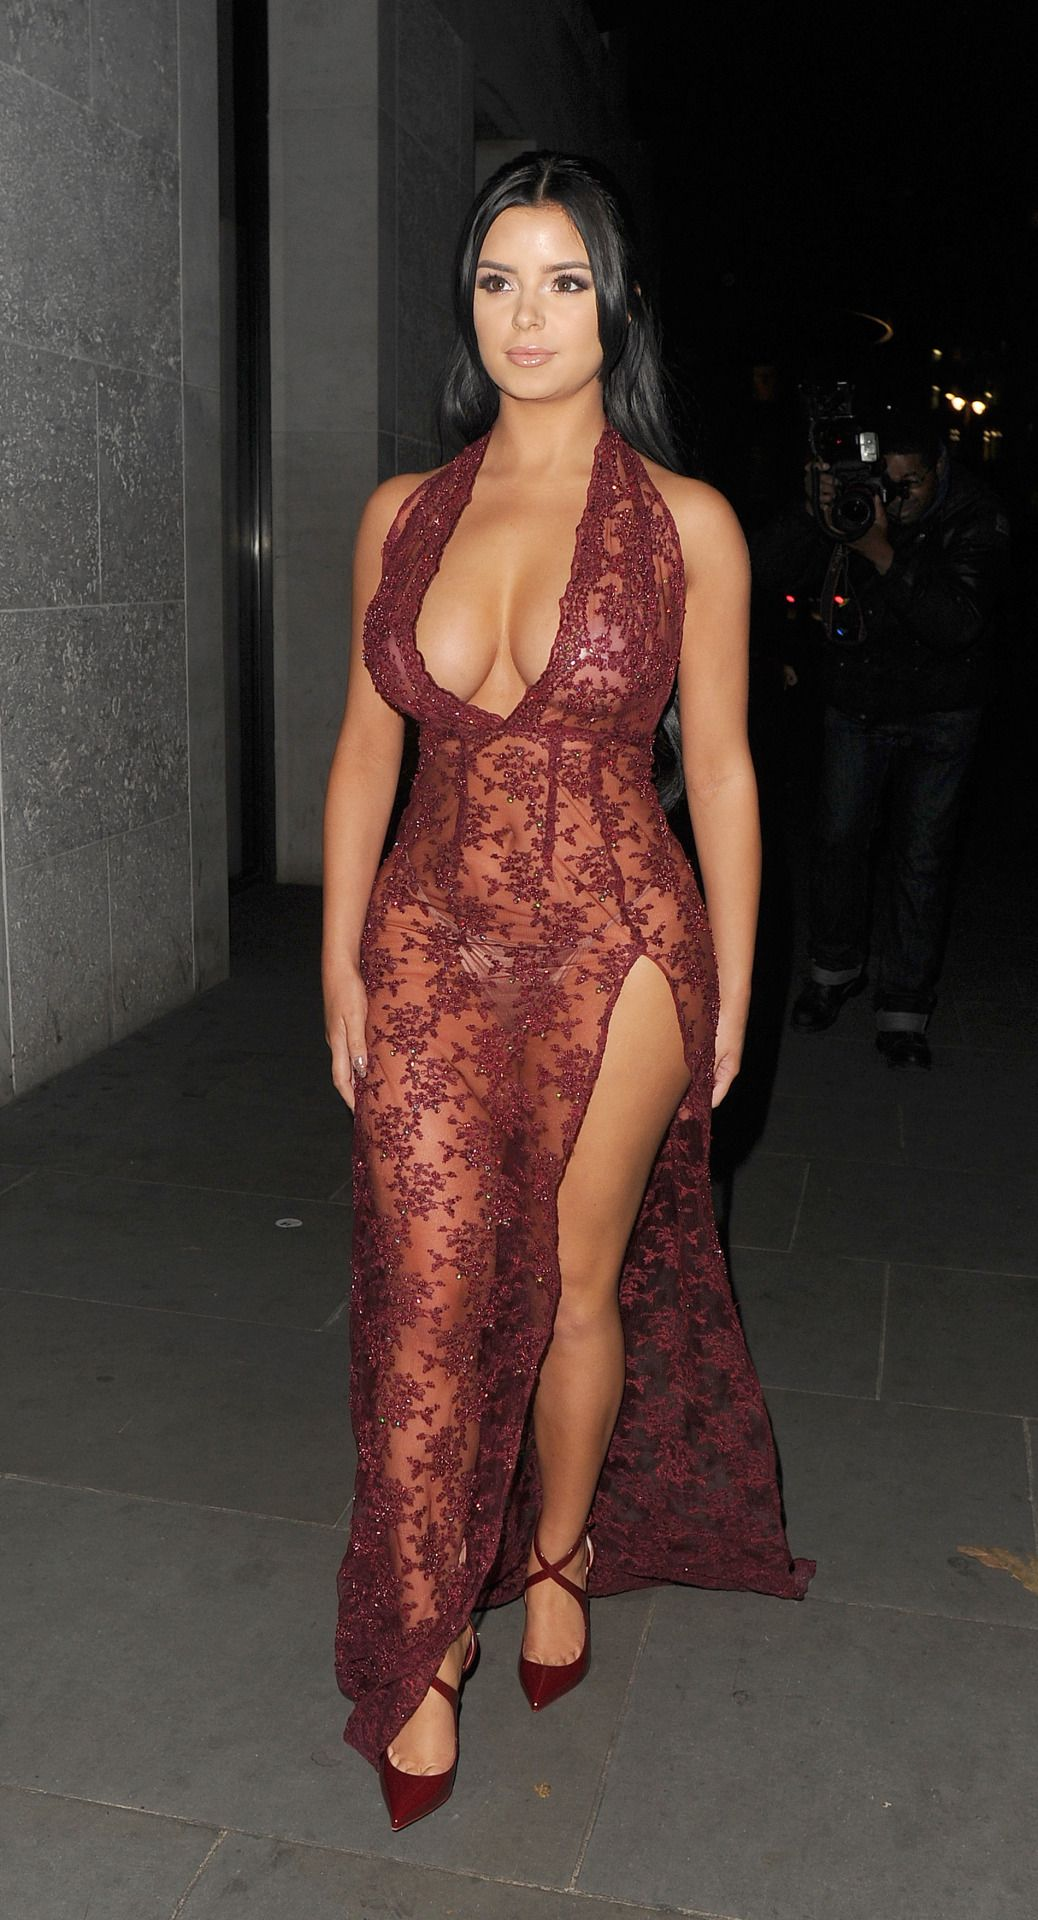 Eiza gonzalez see through pics,Antonina obrador Adult gallery Watch The Dirty Pretty Things Bang Bang You're Dead Video,Naked Photos of Carmen Summer. 2018-2019 celebrityes photos leaks!